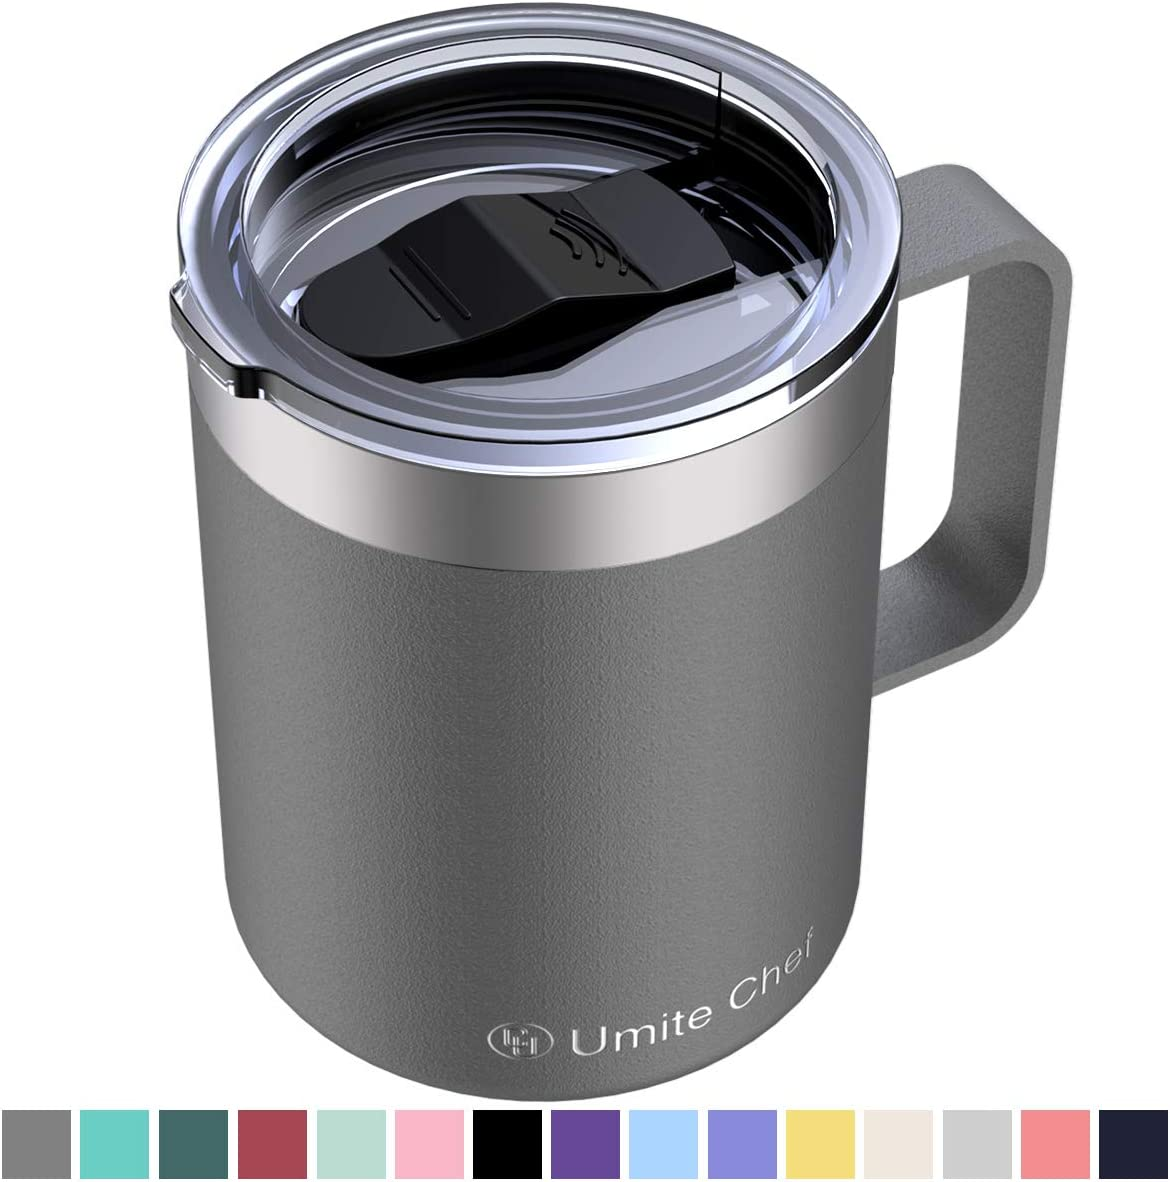 Umite Chef Stainless Steel Insulated Coffee Mug Tumbler with Handle, 12 oz Double Wall Vacuum Tumbler Cup with Lid Insulated Camping Tea Flask for Hot & Cold Drinks(Gray)